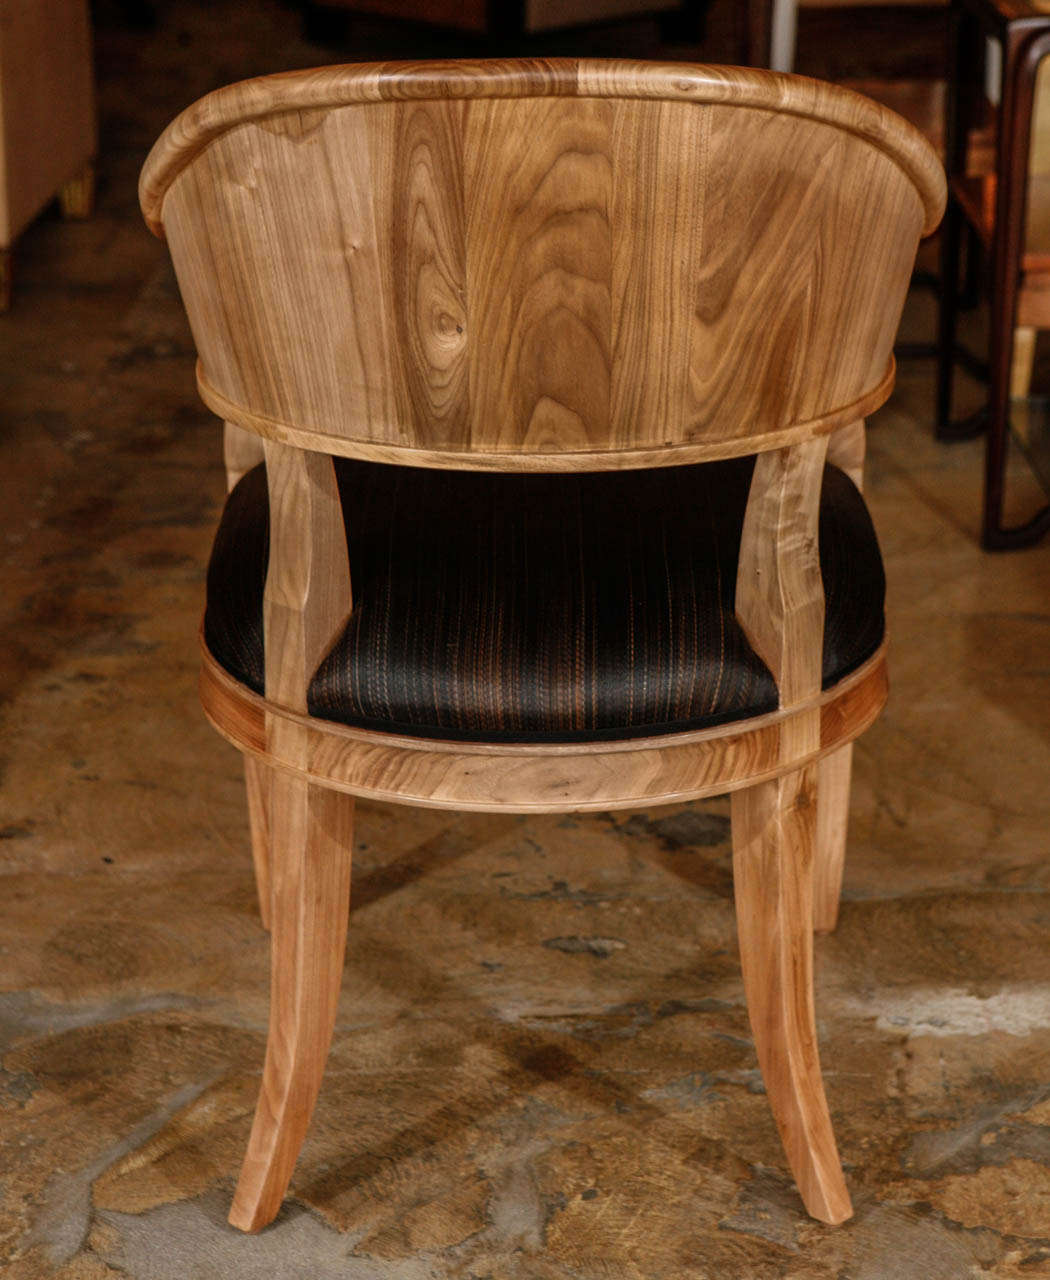 Bleached Walnut French Art Deco Style Chairs For Sale 2